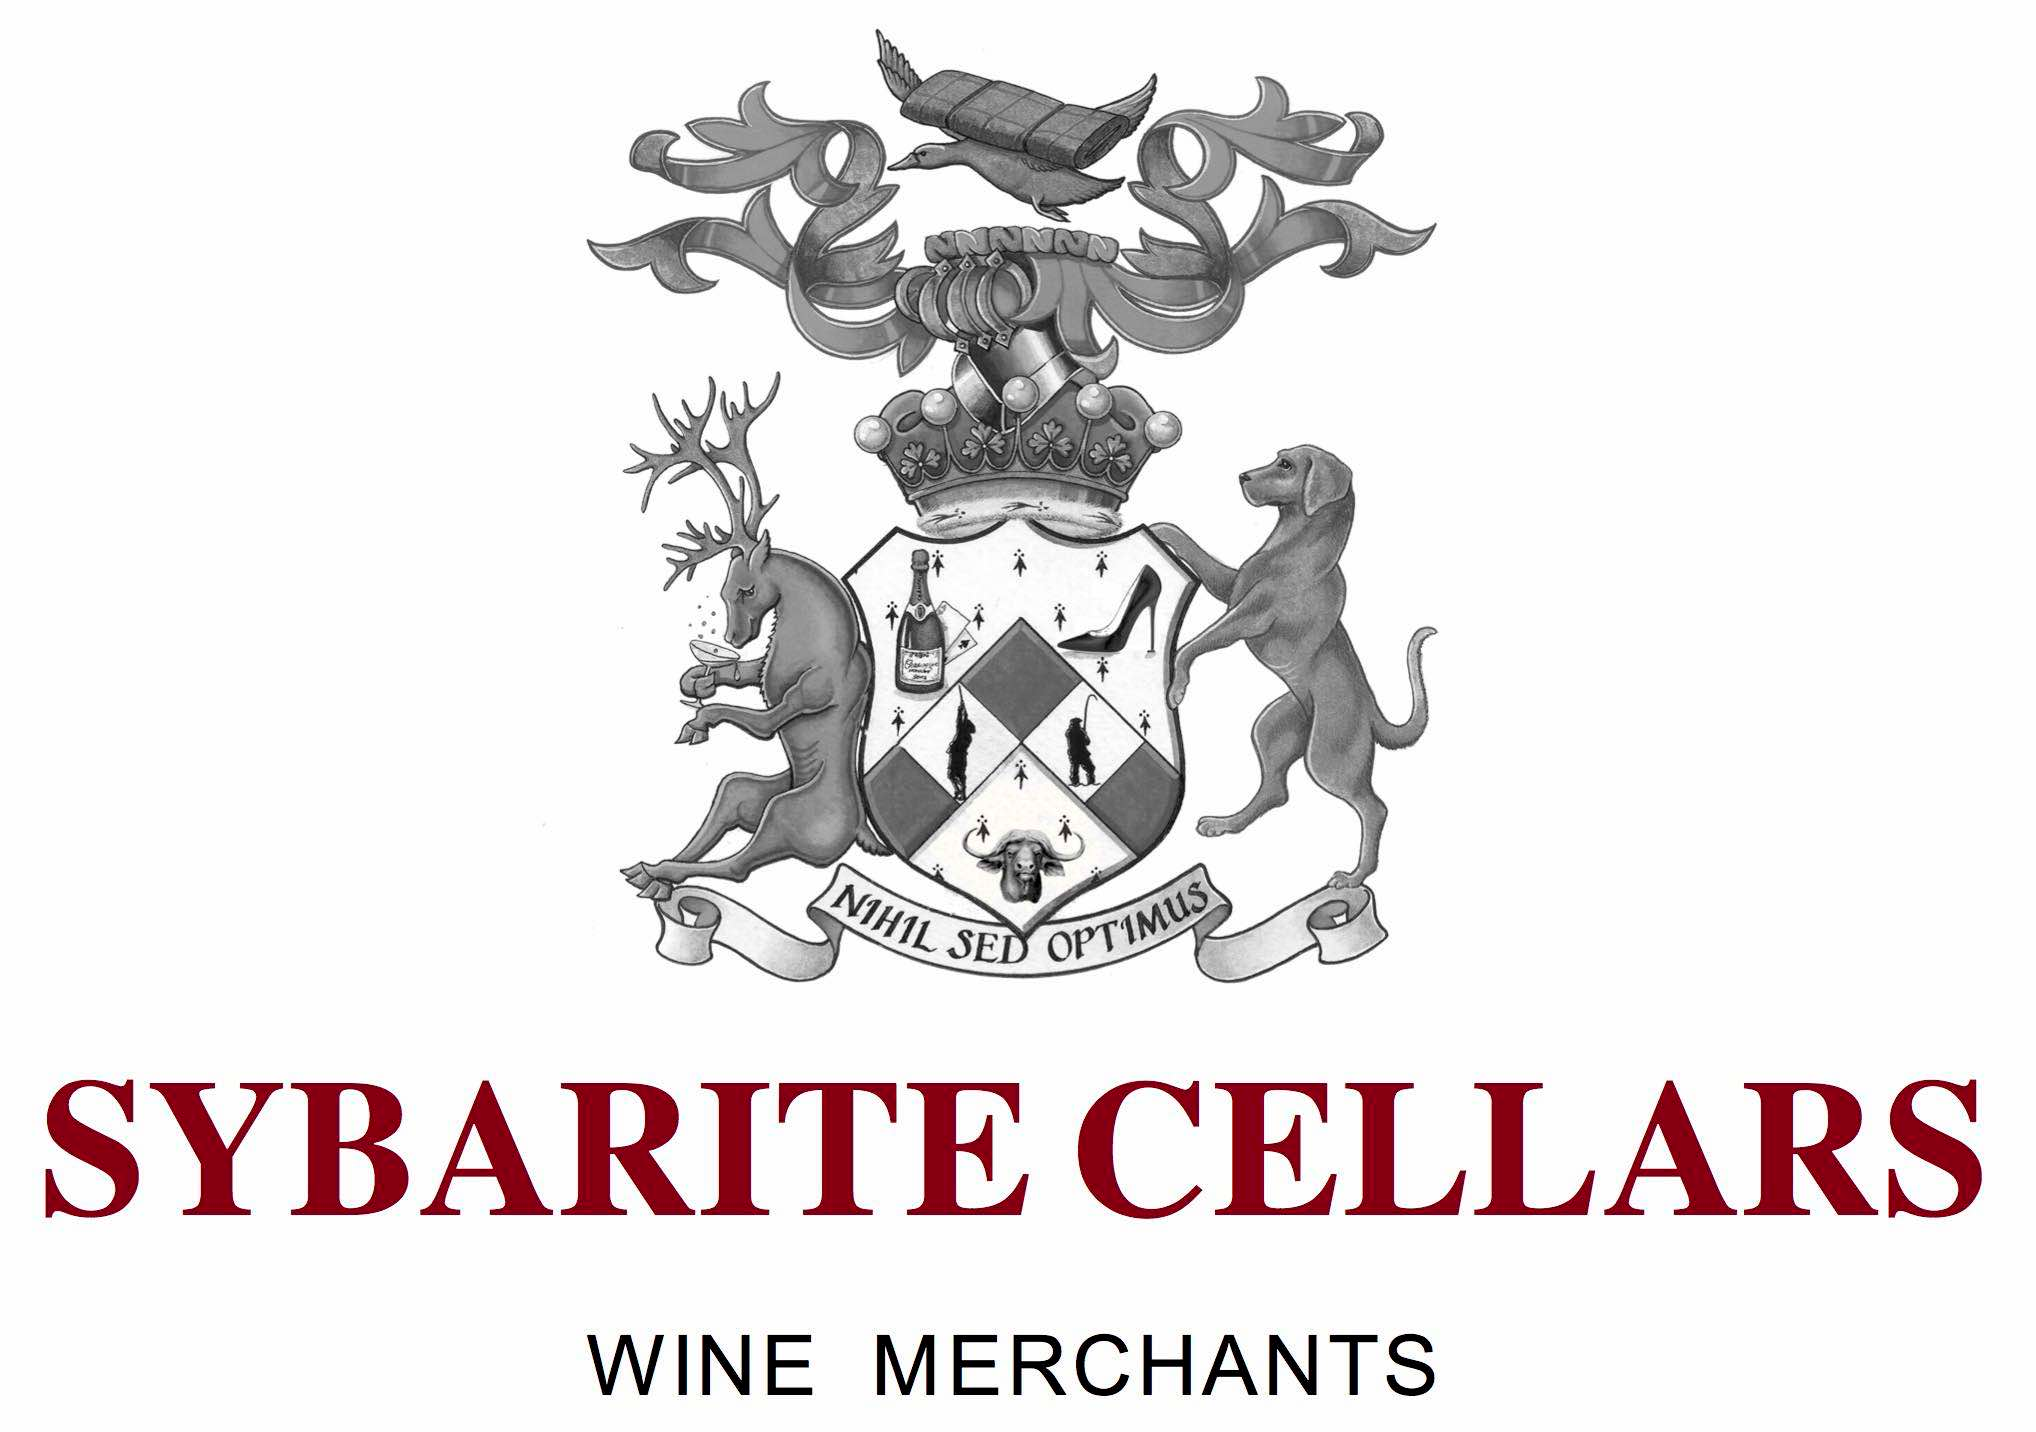 Sybarite Cellars Ltd